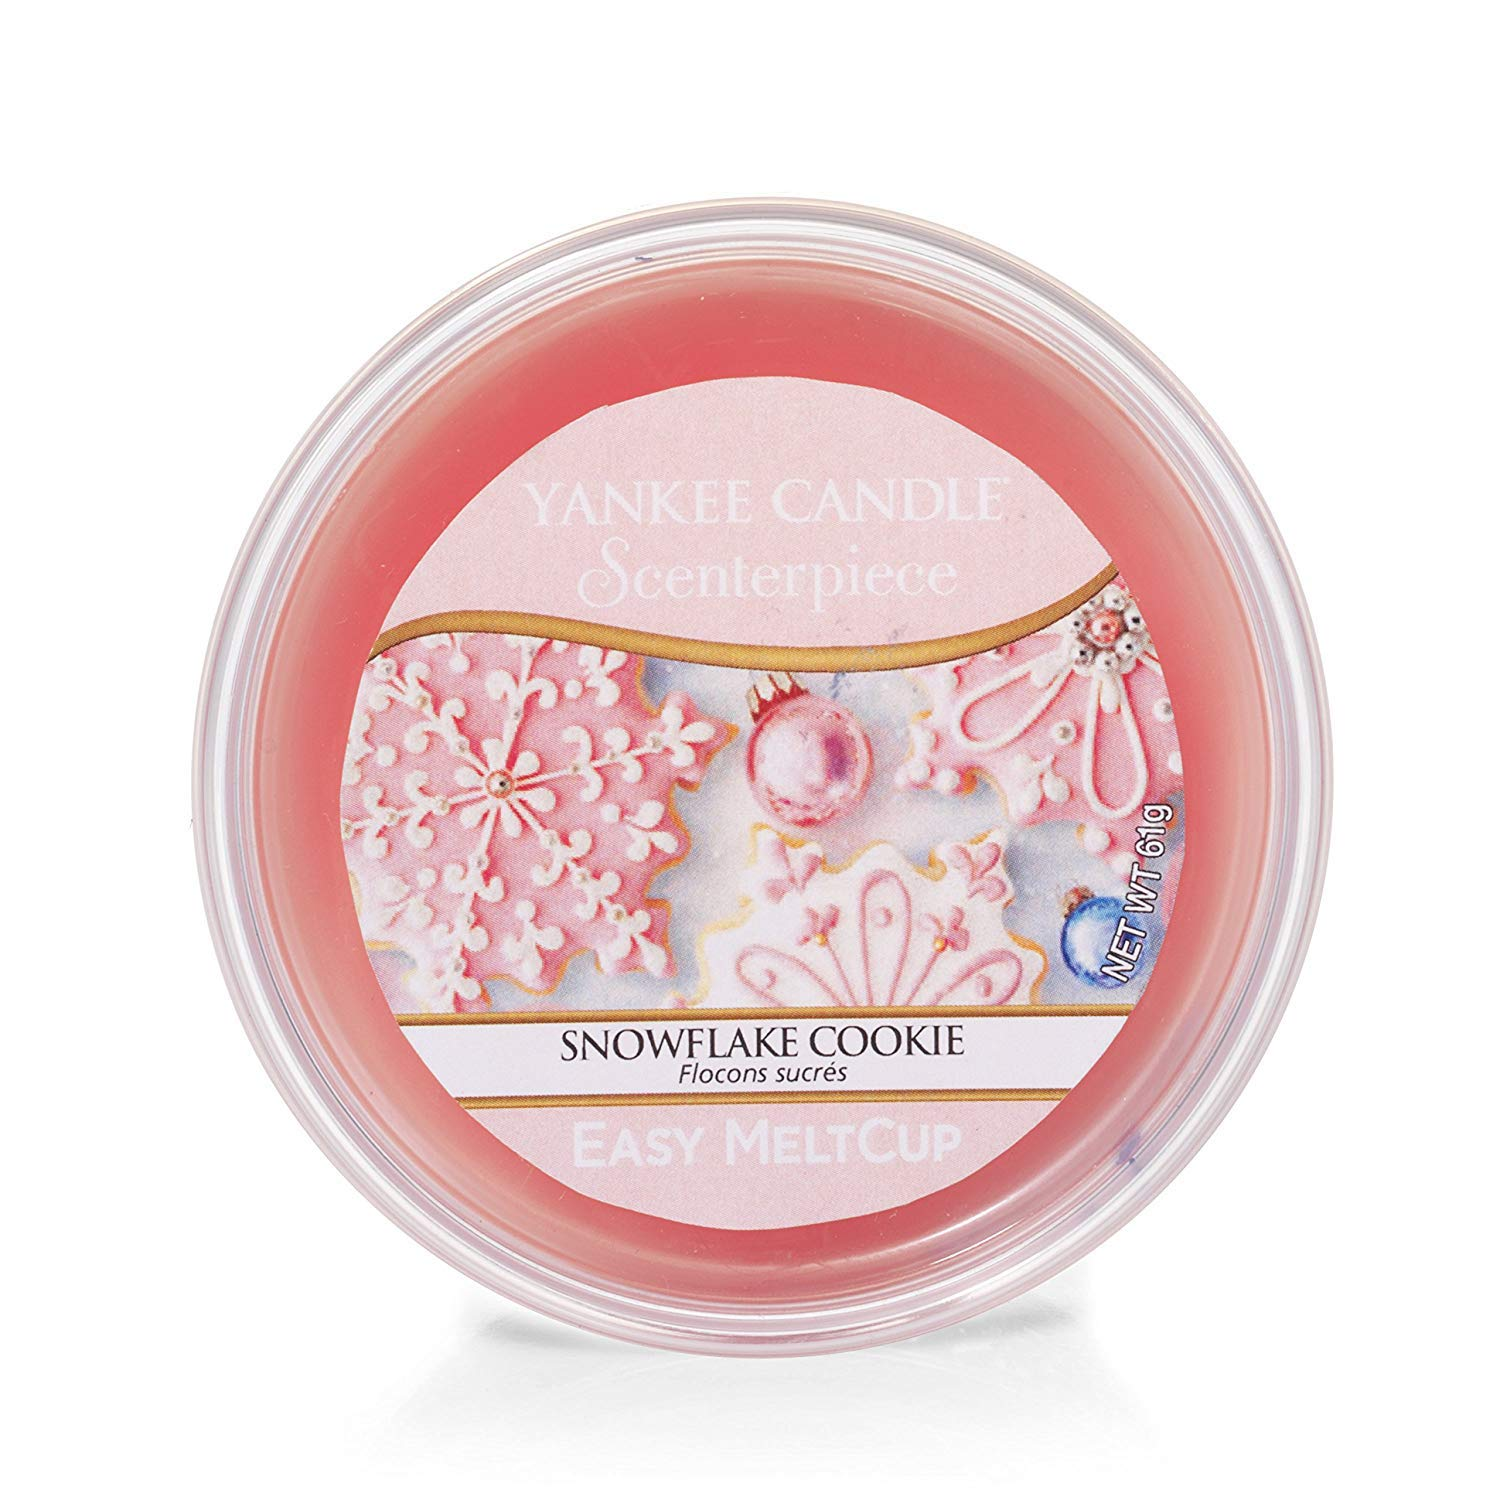 Rosa YANKEE CANDLE Snowflake Cookie Scenterpiece per Cialde Melt